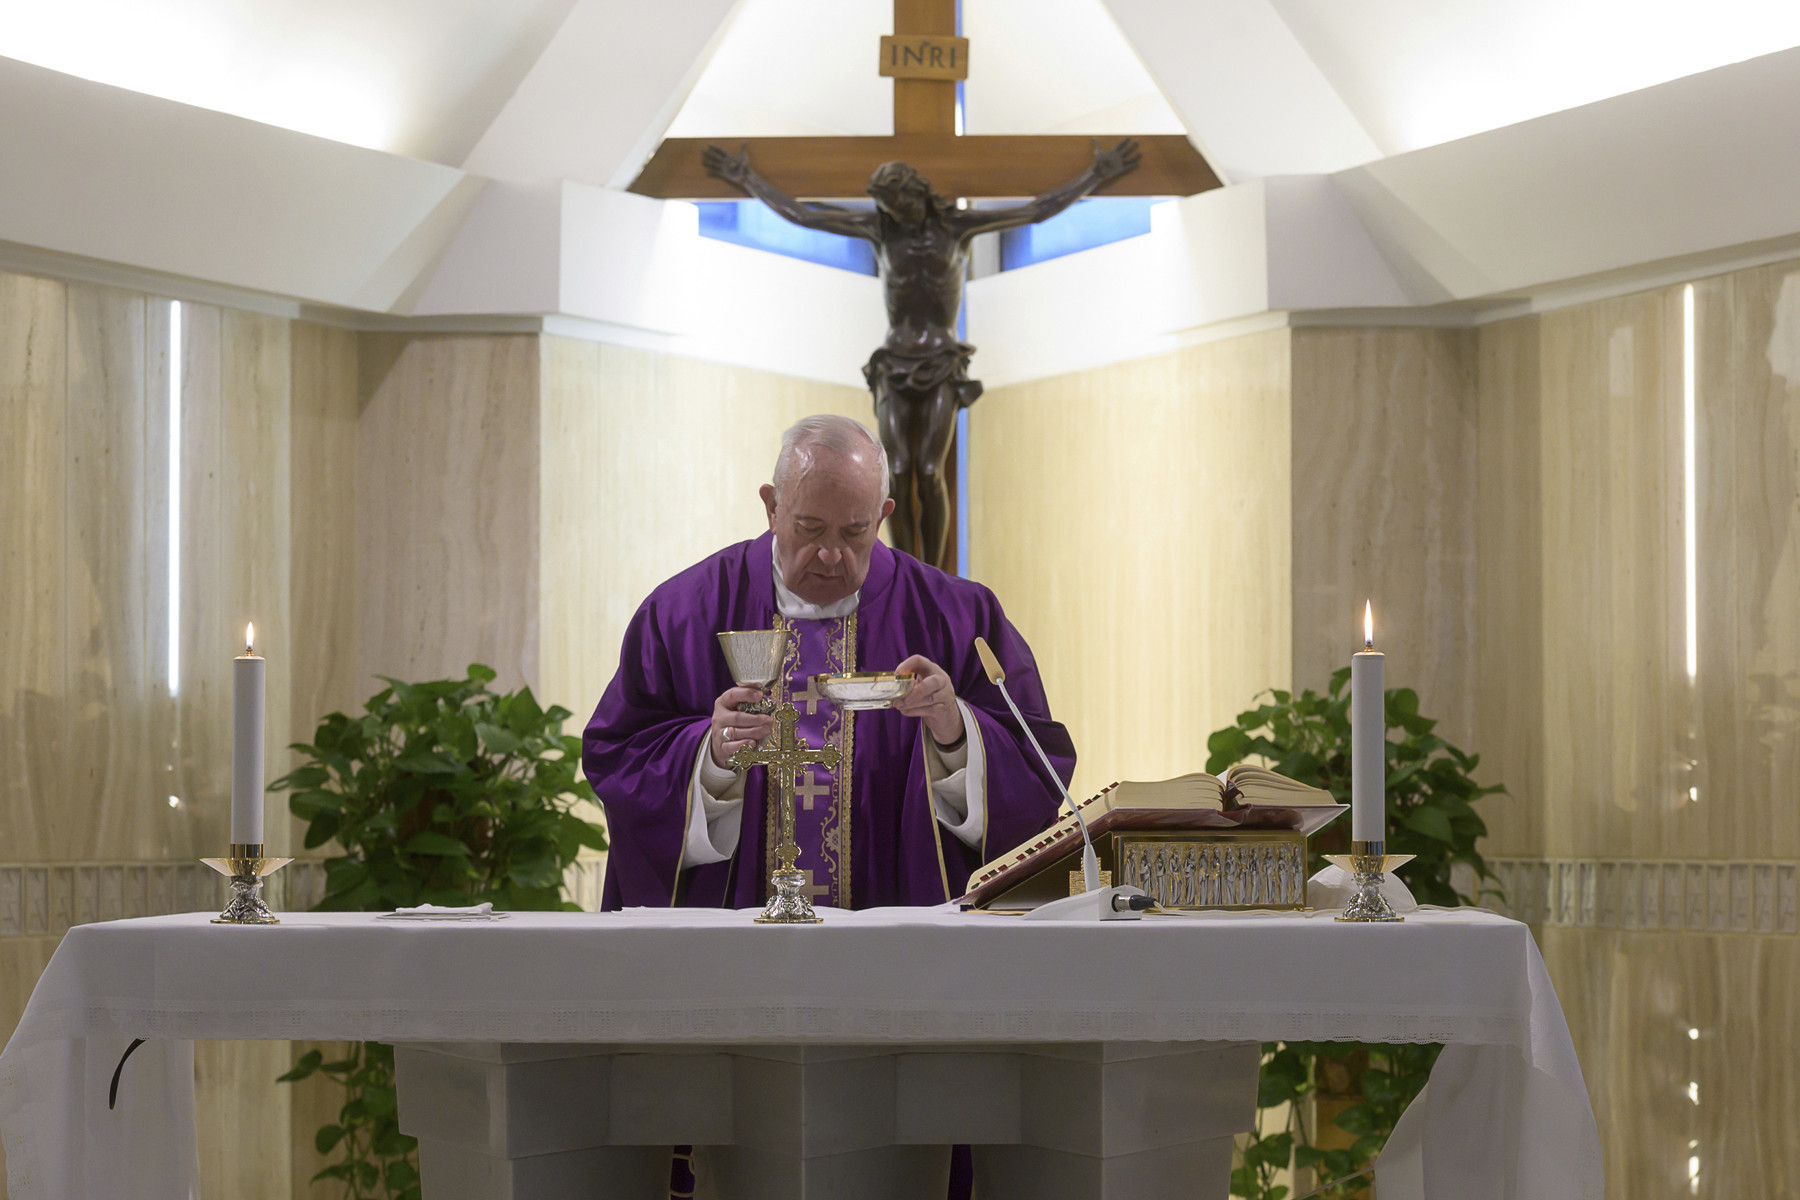 Vatican Easter services to go on without visitors amid coronavirus concerns